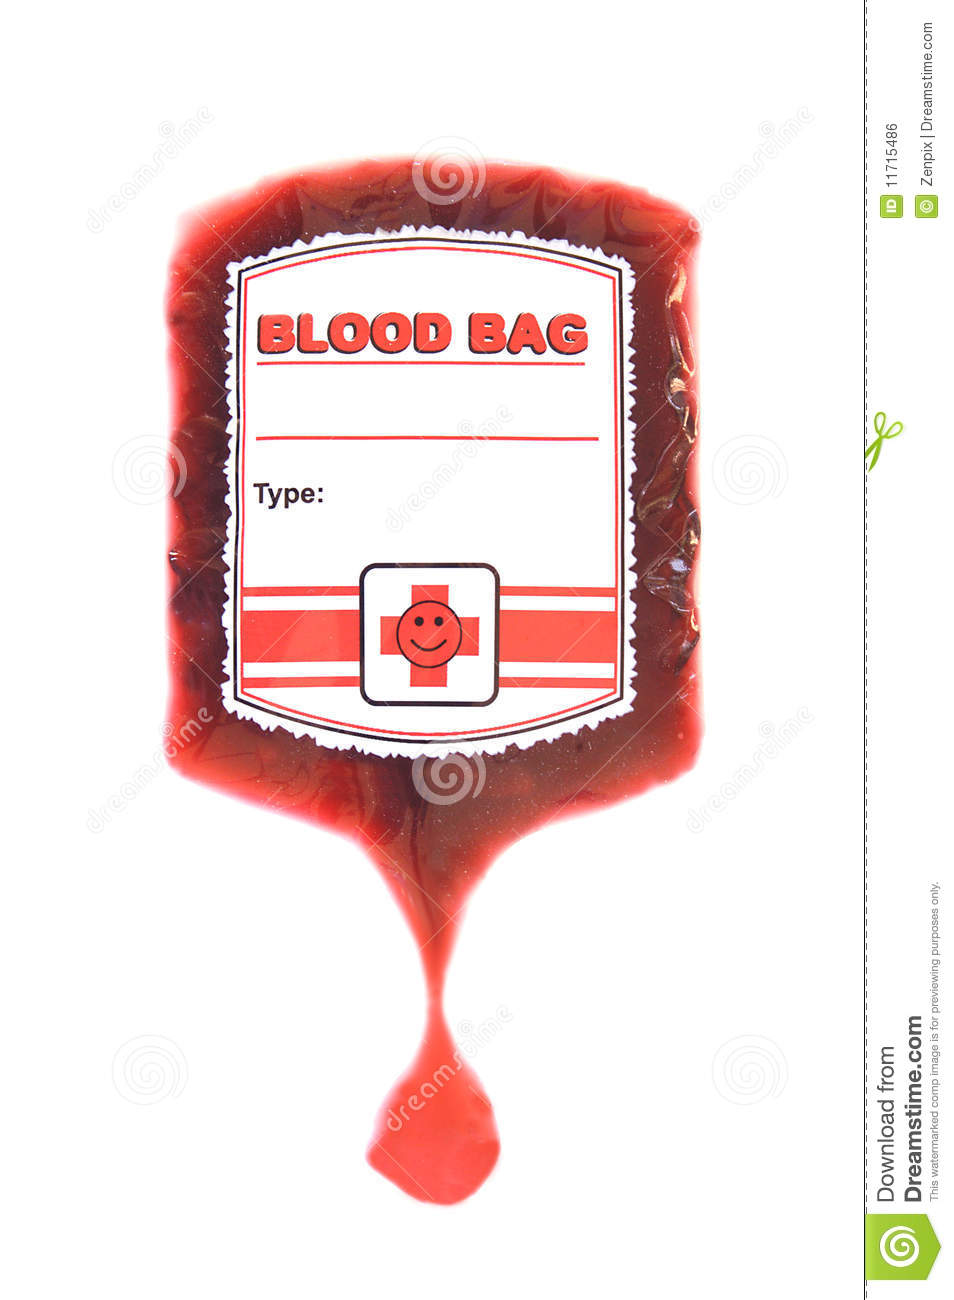 Blood Bag Clipart.